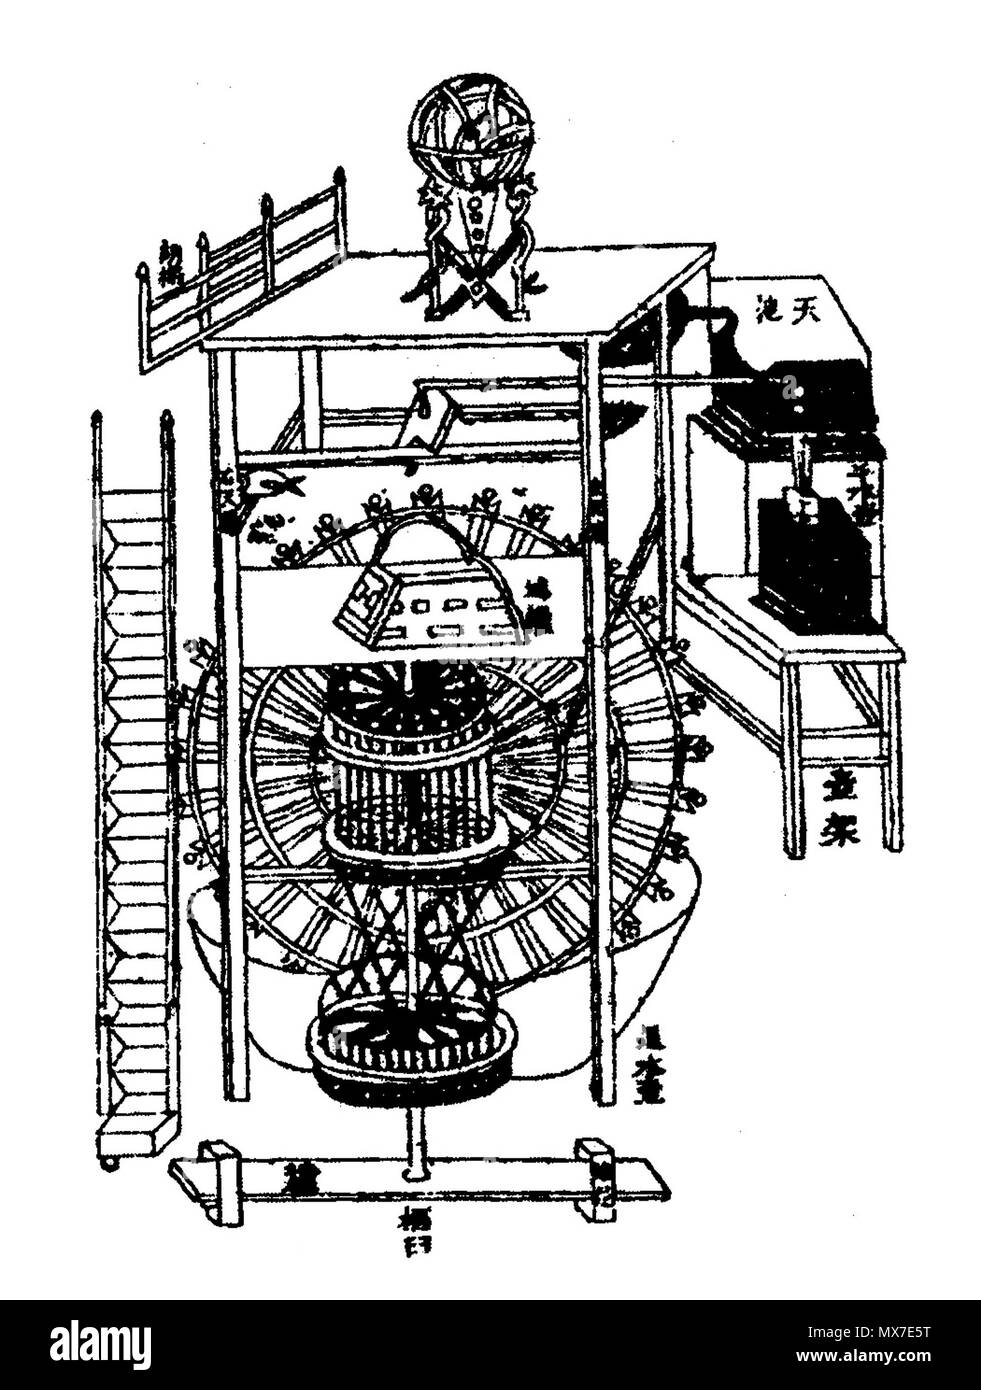 . Chinese mechanical and horological engineering from the Song Dynasty; this diagram provides an overall general view of the inner workings and armillary sphere of Su Song's clocktower built in Kaifeng. The drawn illustration comes from Su Song's book Xin Yi Xiang Fa Yao published in the year 1092. On the right is the upper reservoir tank with the 'constant-level tank' beneath it. In the center foreground is the 'earth horizon' box in which the celestial globe was mounted. Below that are the time keeping shaft and wheels supported by a mortar-shaped end-bearing. Behind this is the main driving Stock Photo